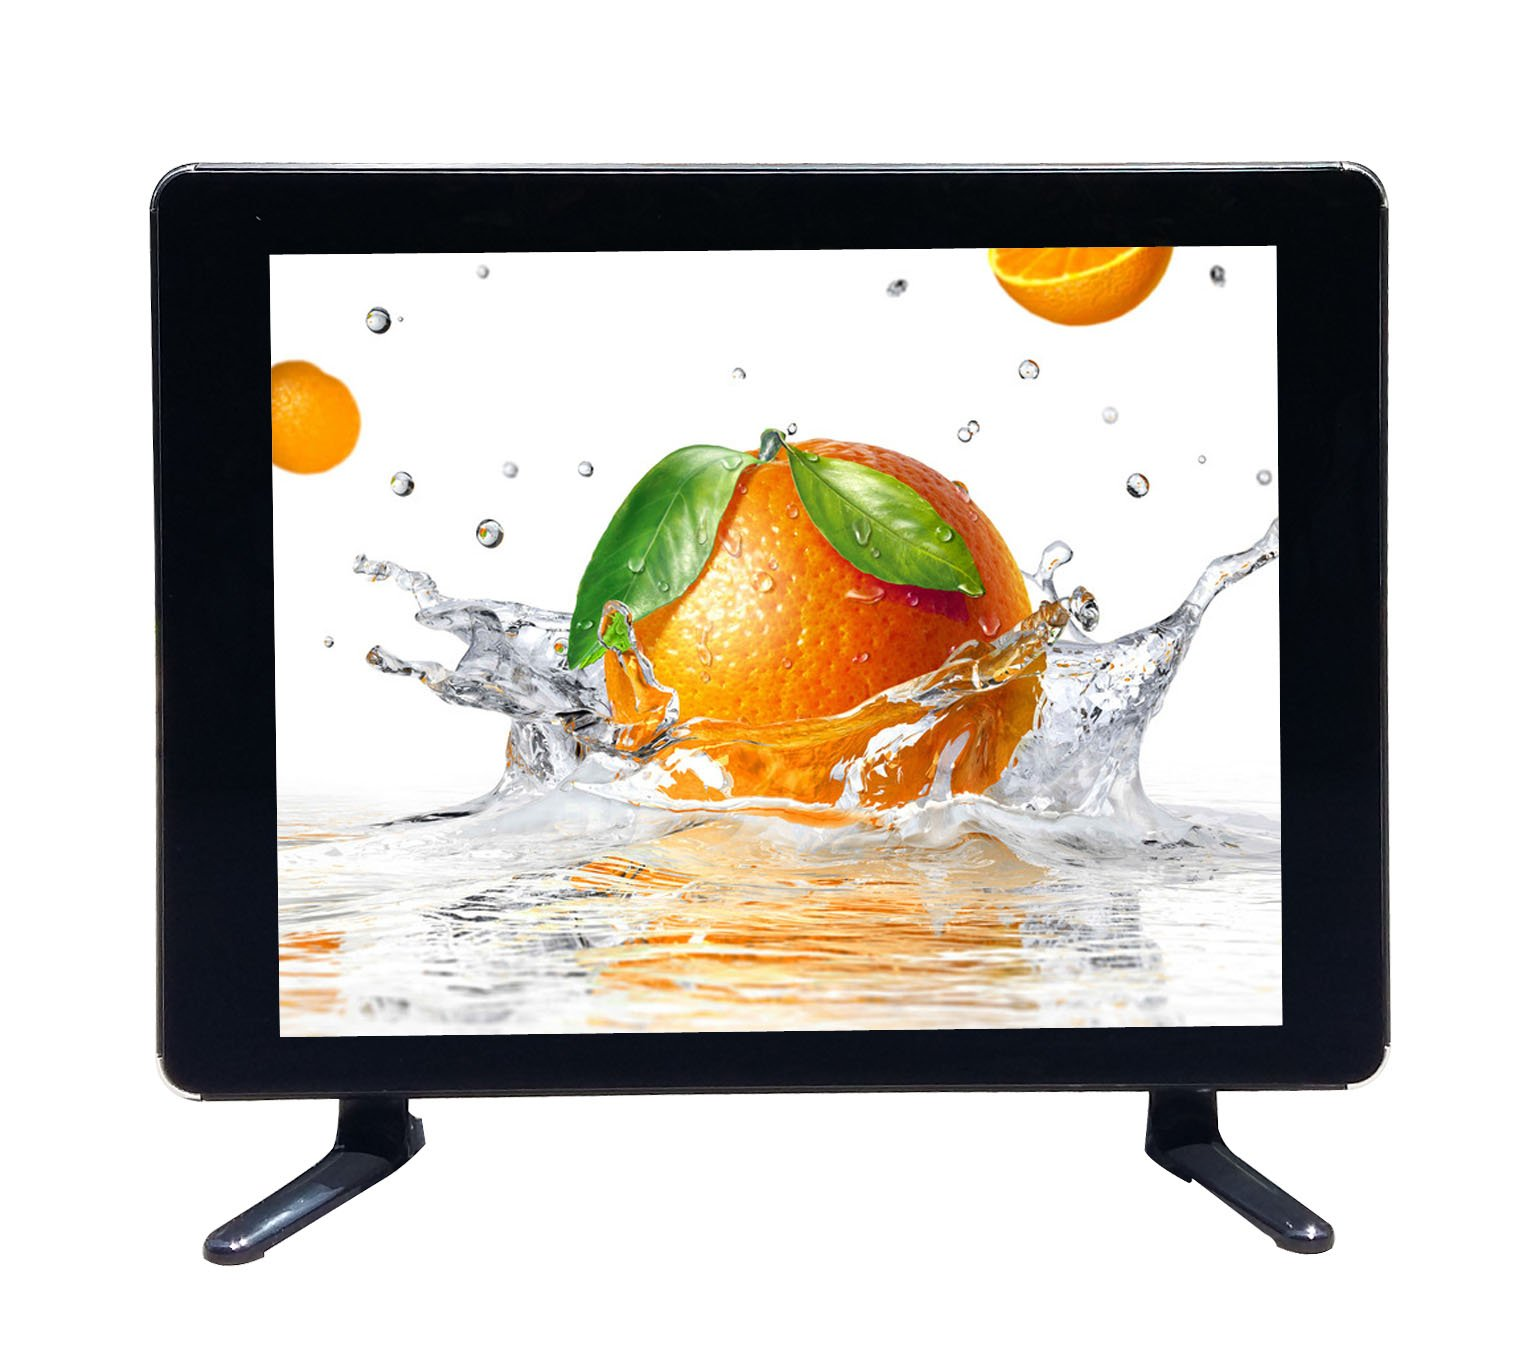 Xinyao LCD on-sale tv lcd 17 new style for tv screen-4